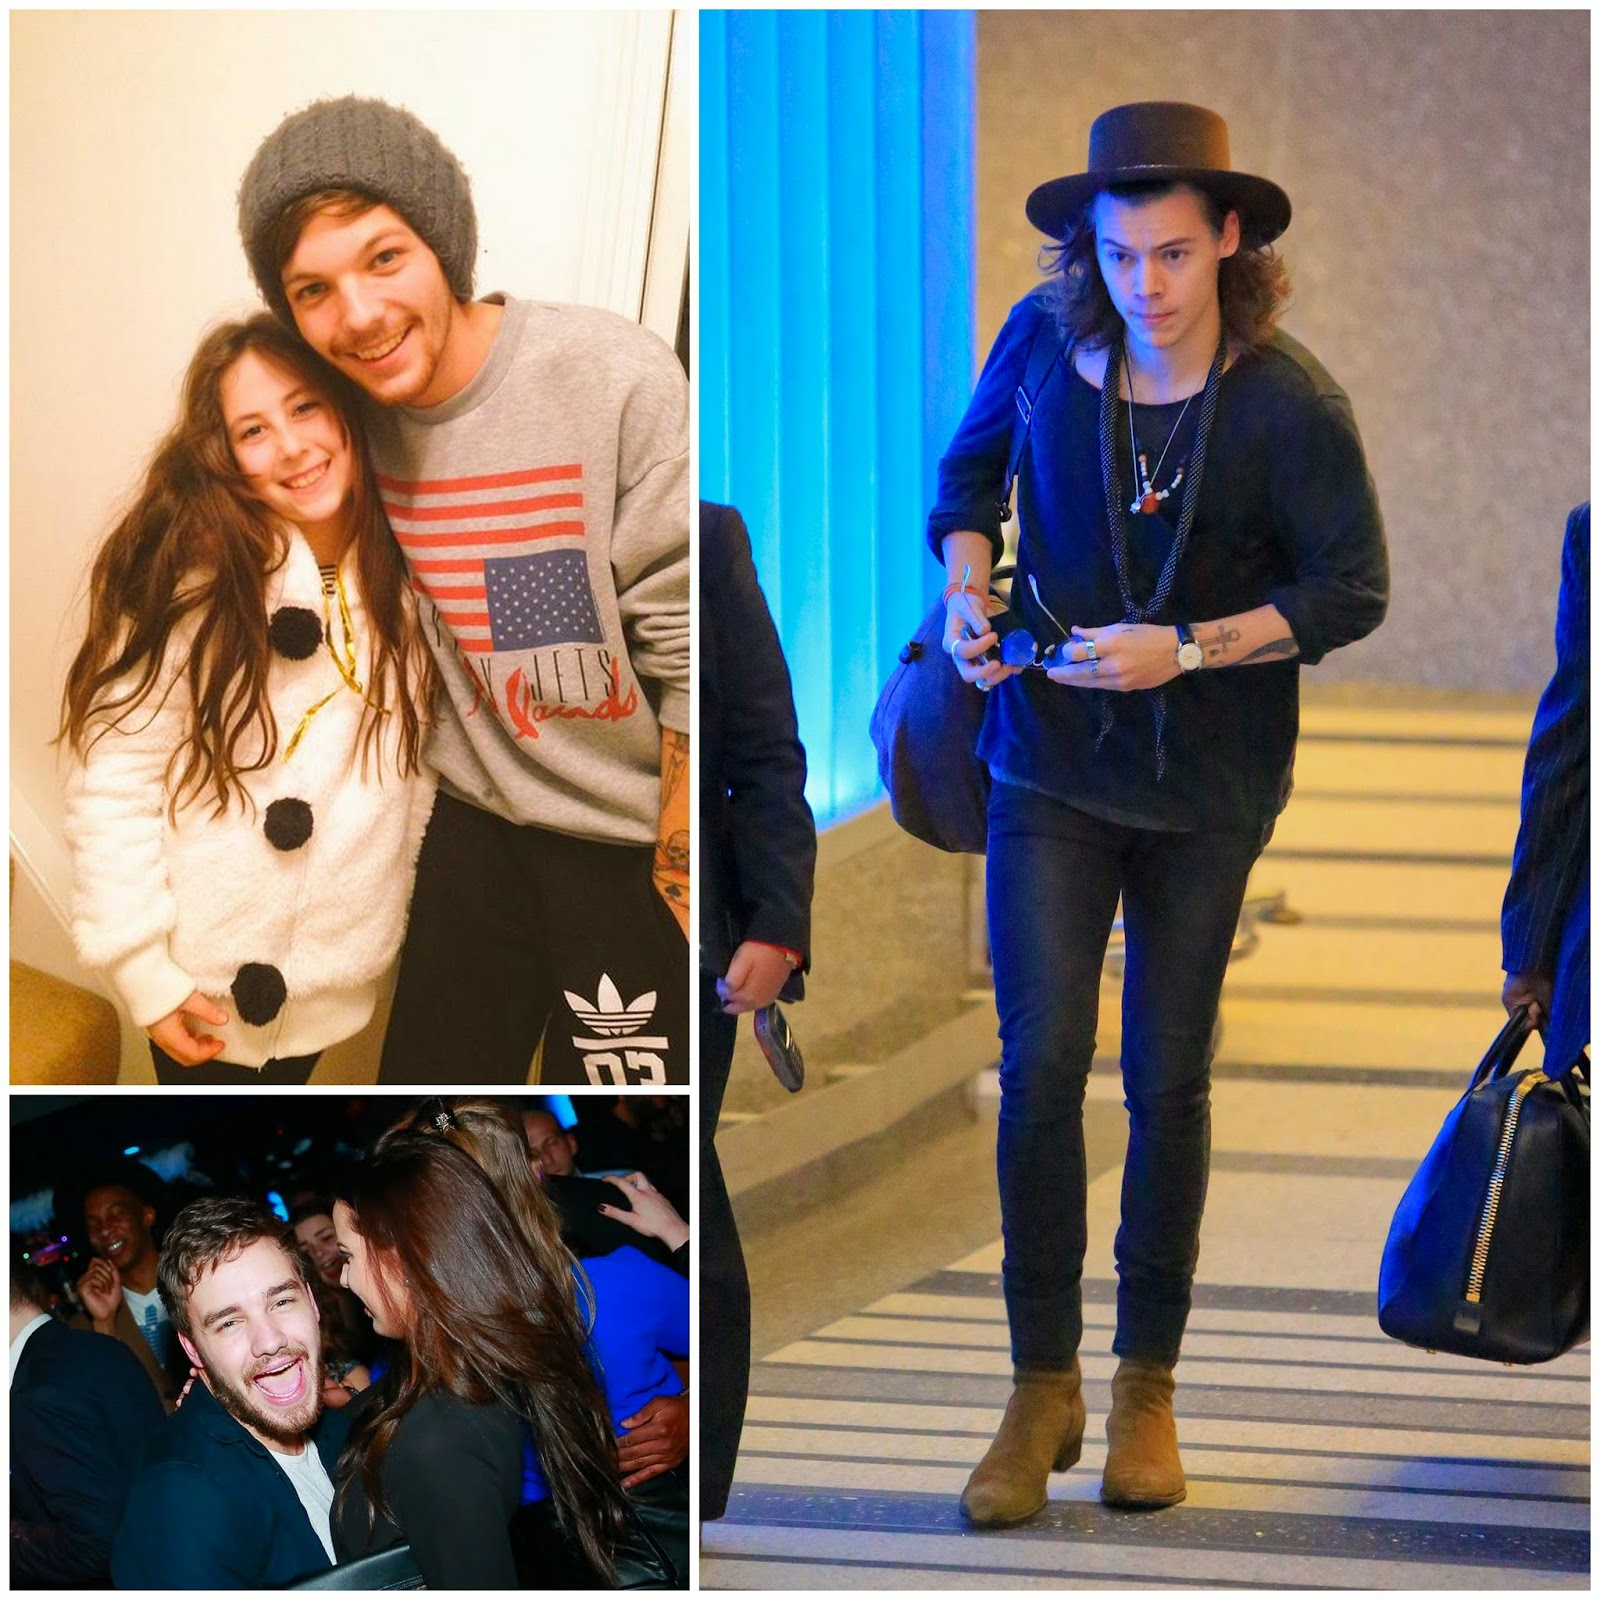 02.01.15,  harry styles, liam payne, louis tomlinson, one direction,  london, heathrow, lax, airport, fans, eden dora trust, sophia smith, funky buddha